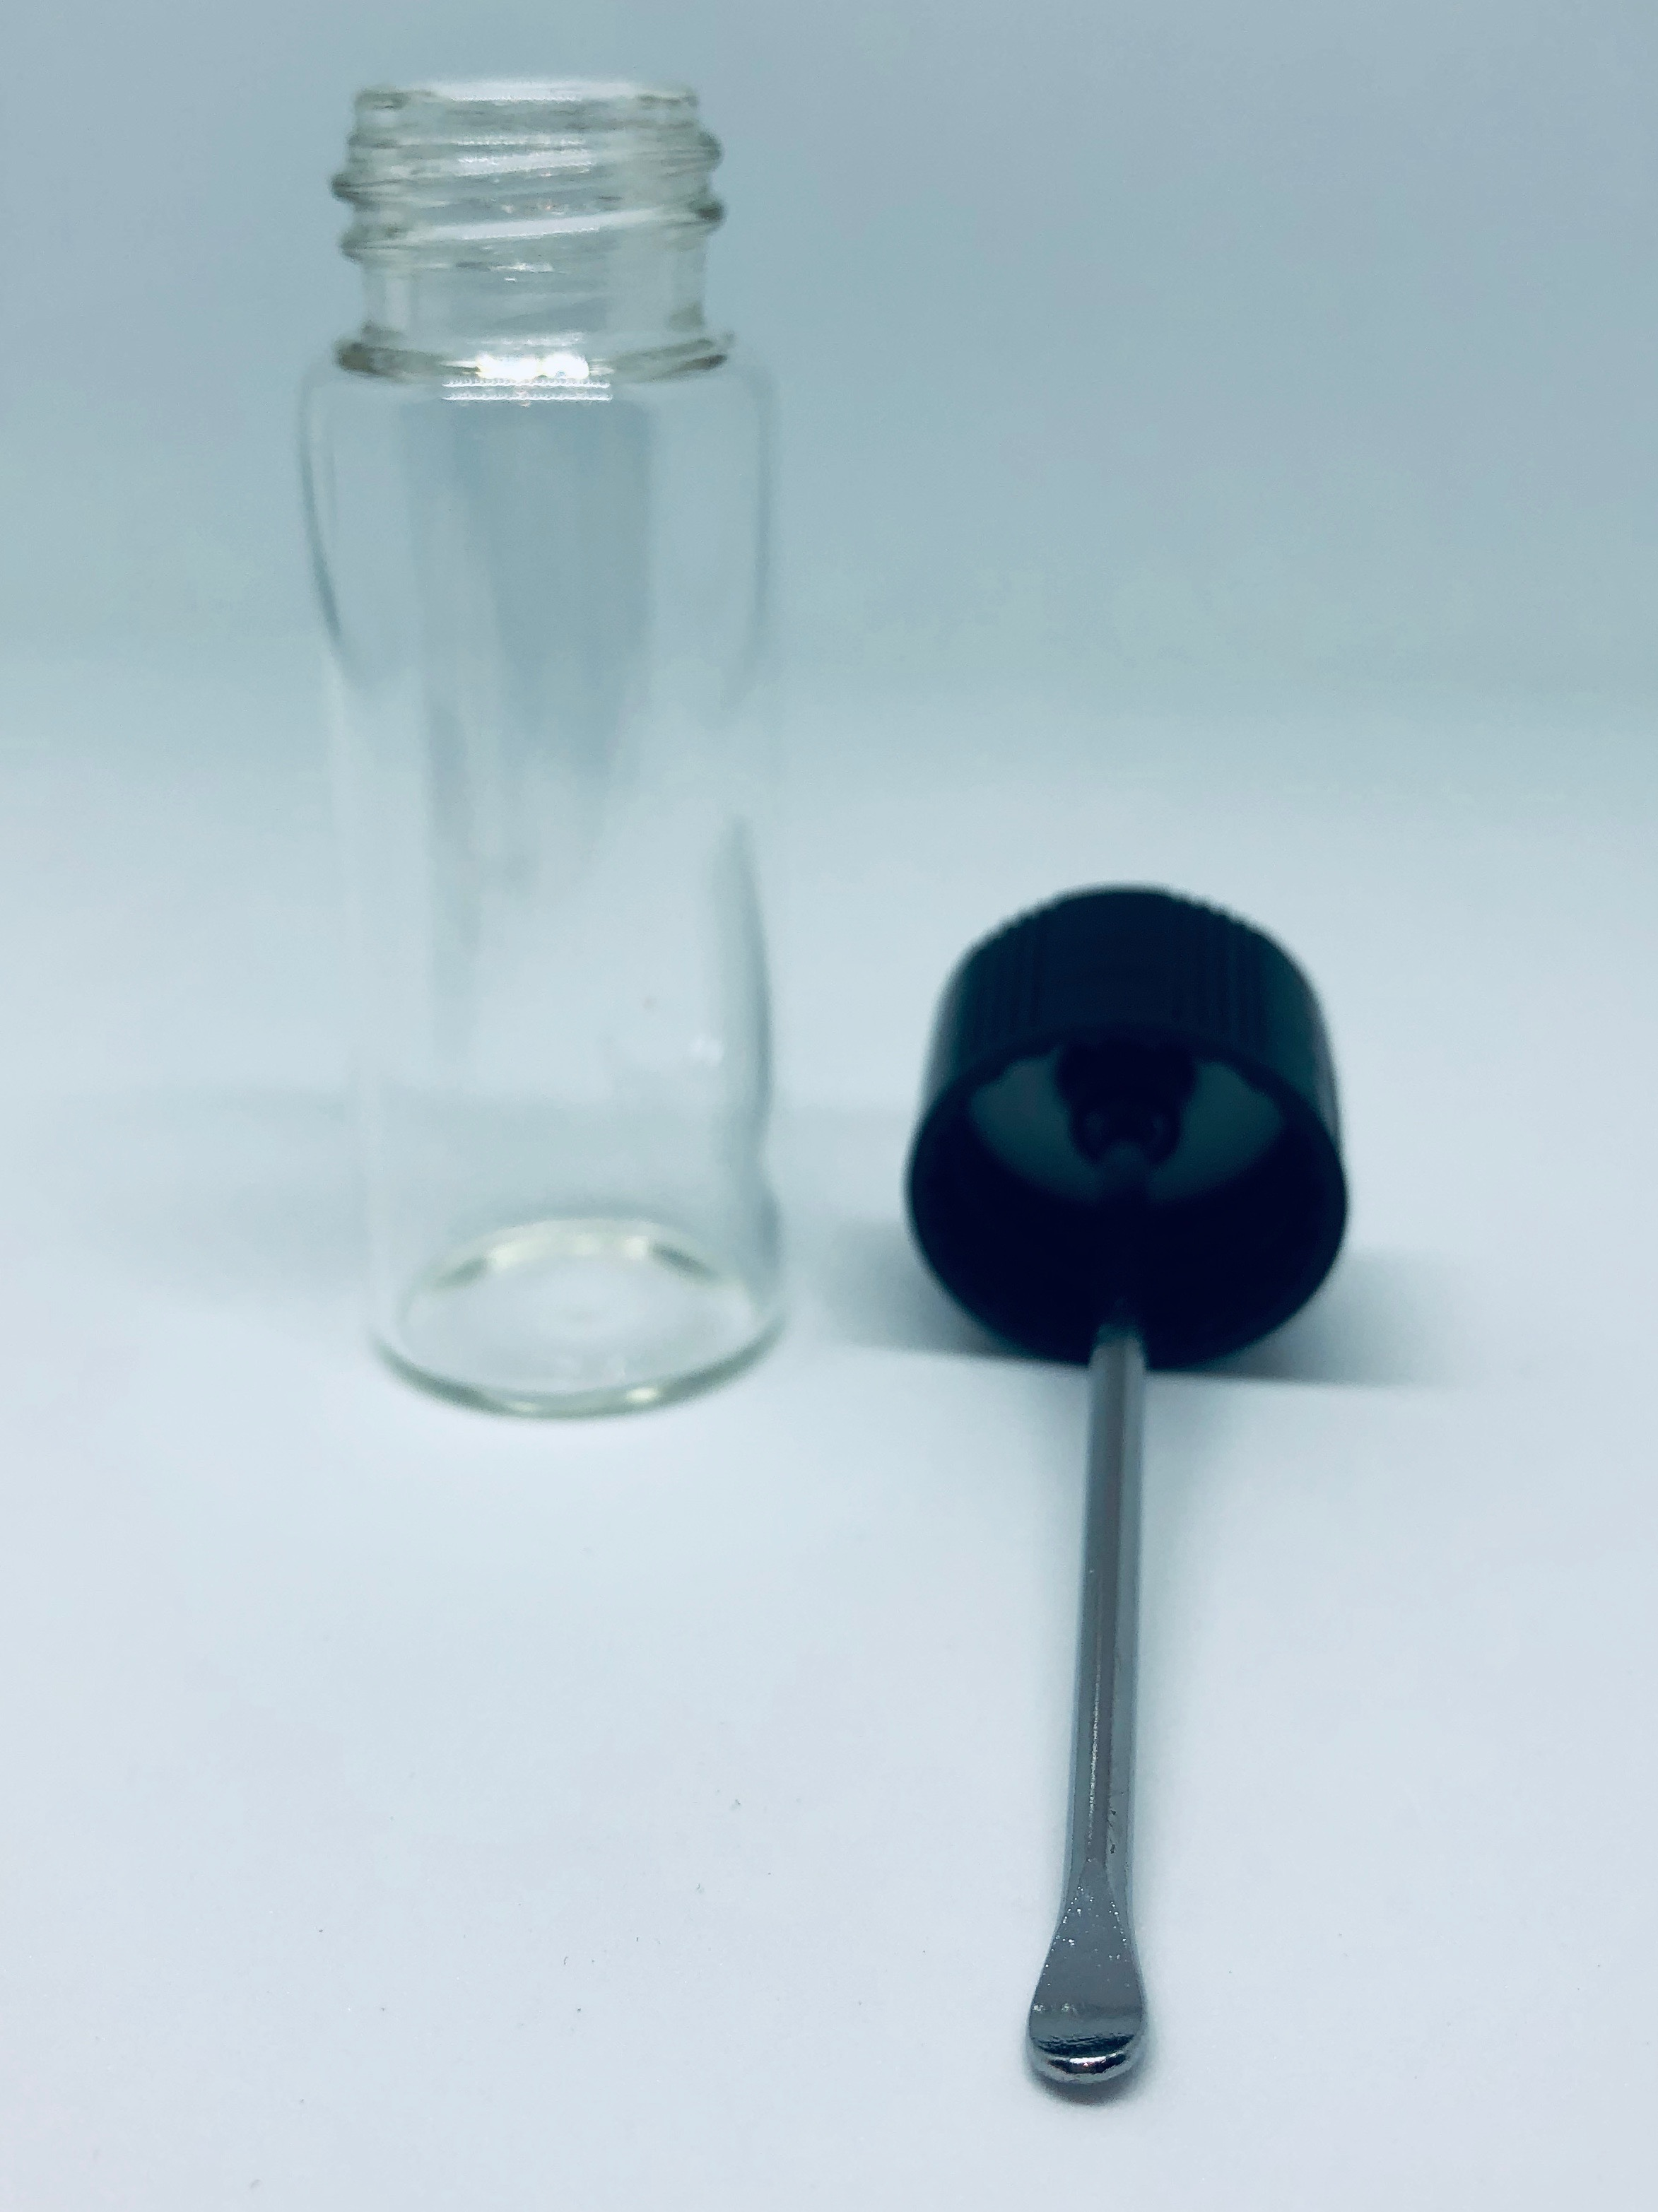 Big Storage 2X Large size Glass Snuff Bottle with Fixed Spoon Inside